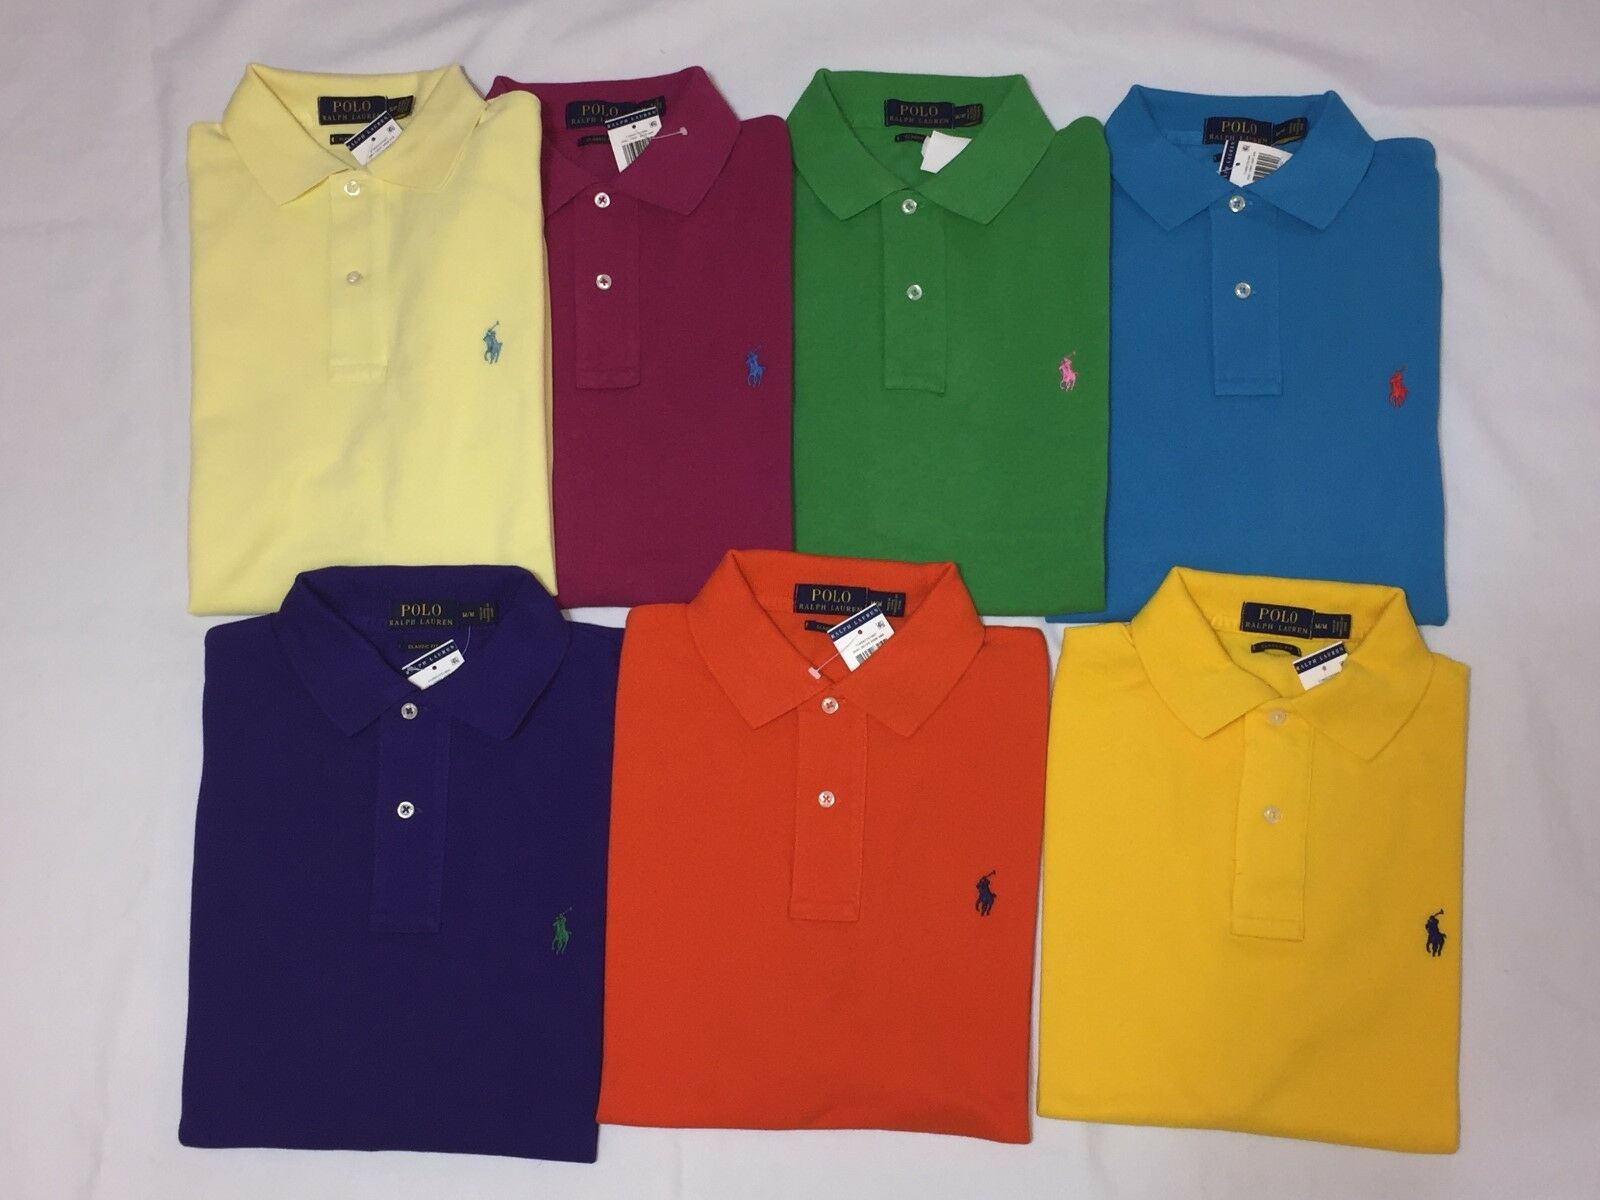 NEW WITH TAGS POLO RALPH LAUREN MEN'S CLASSIC FIT POLO SHIRT- S M L XL 2XL